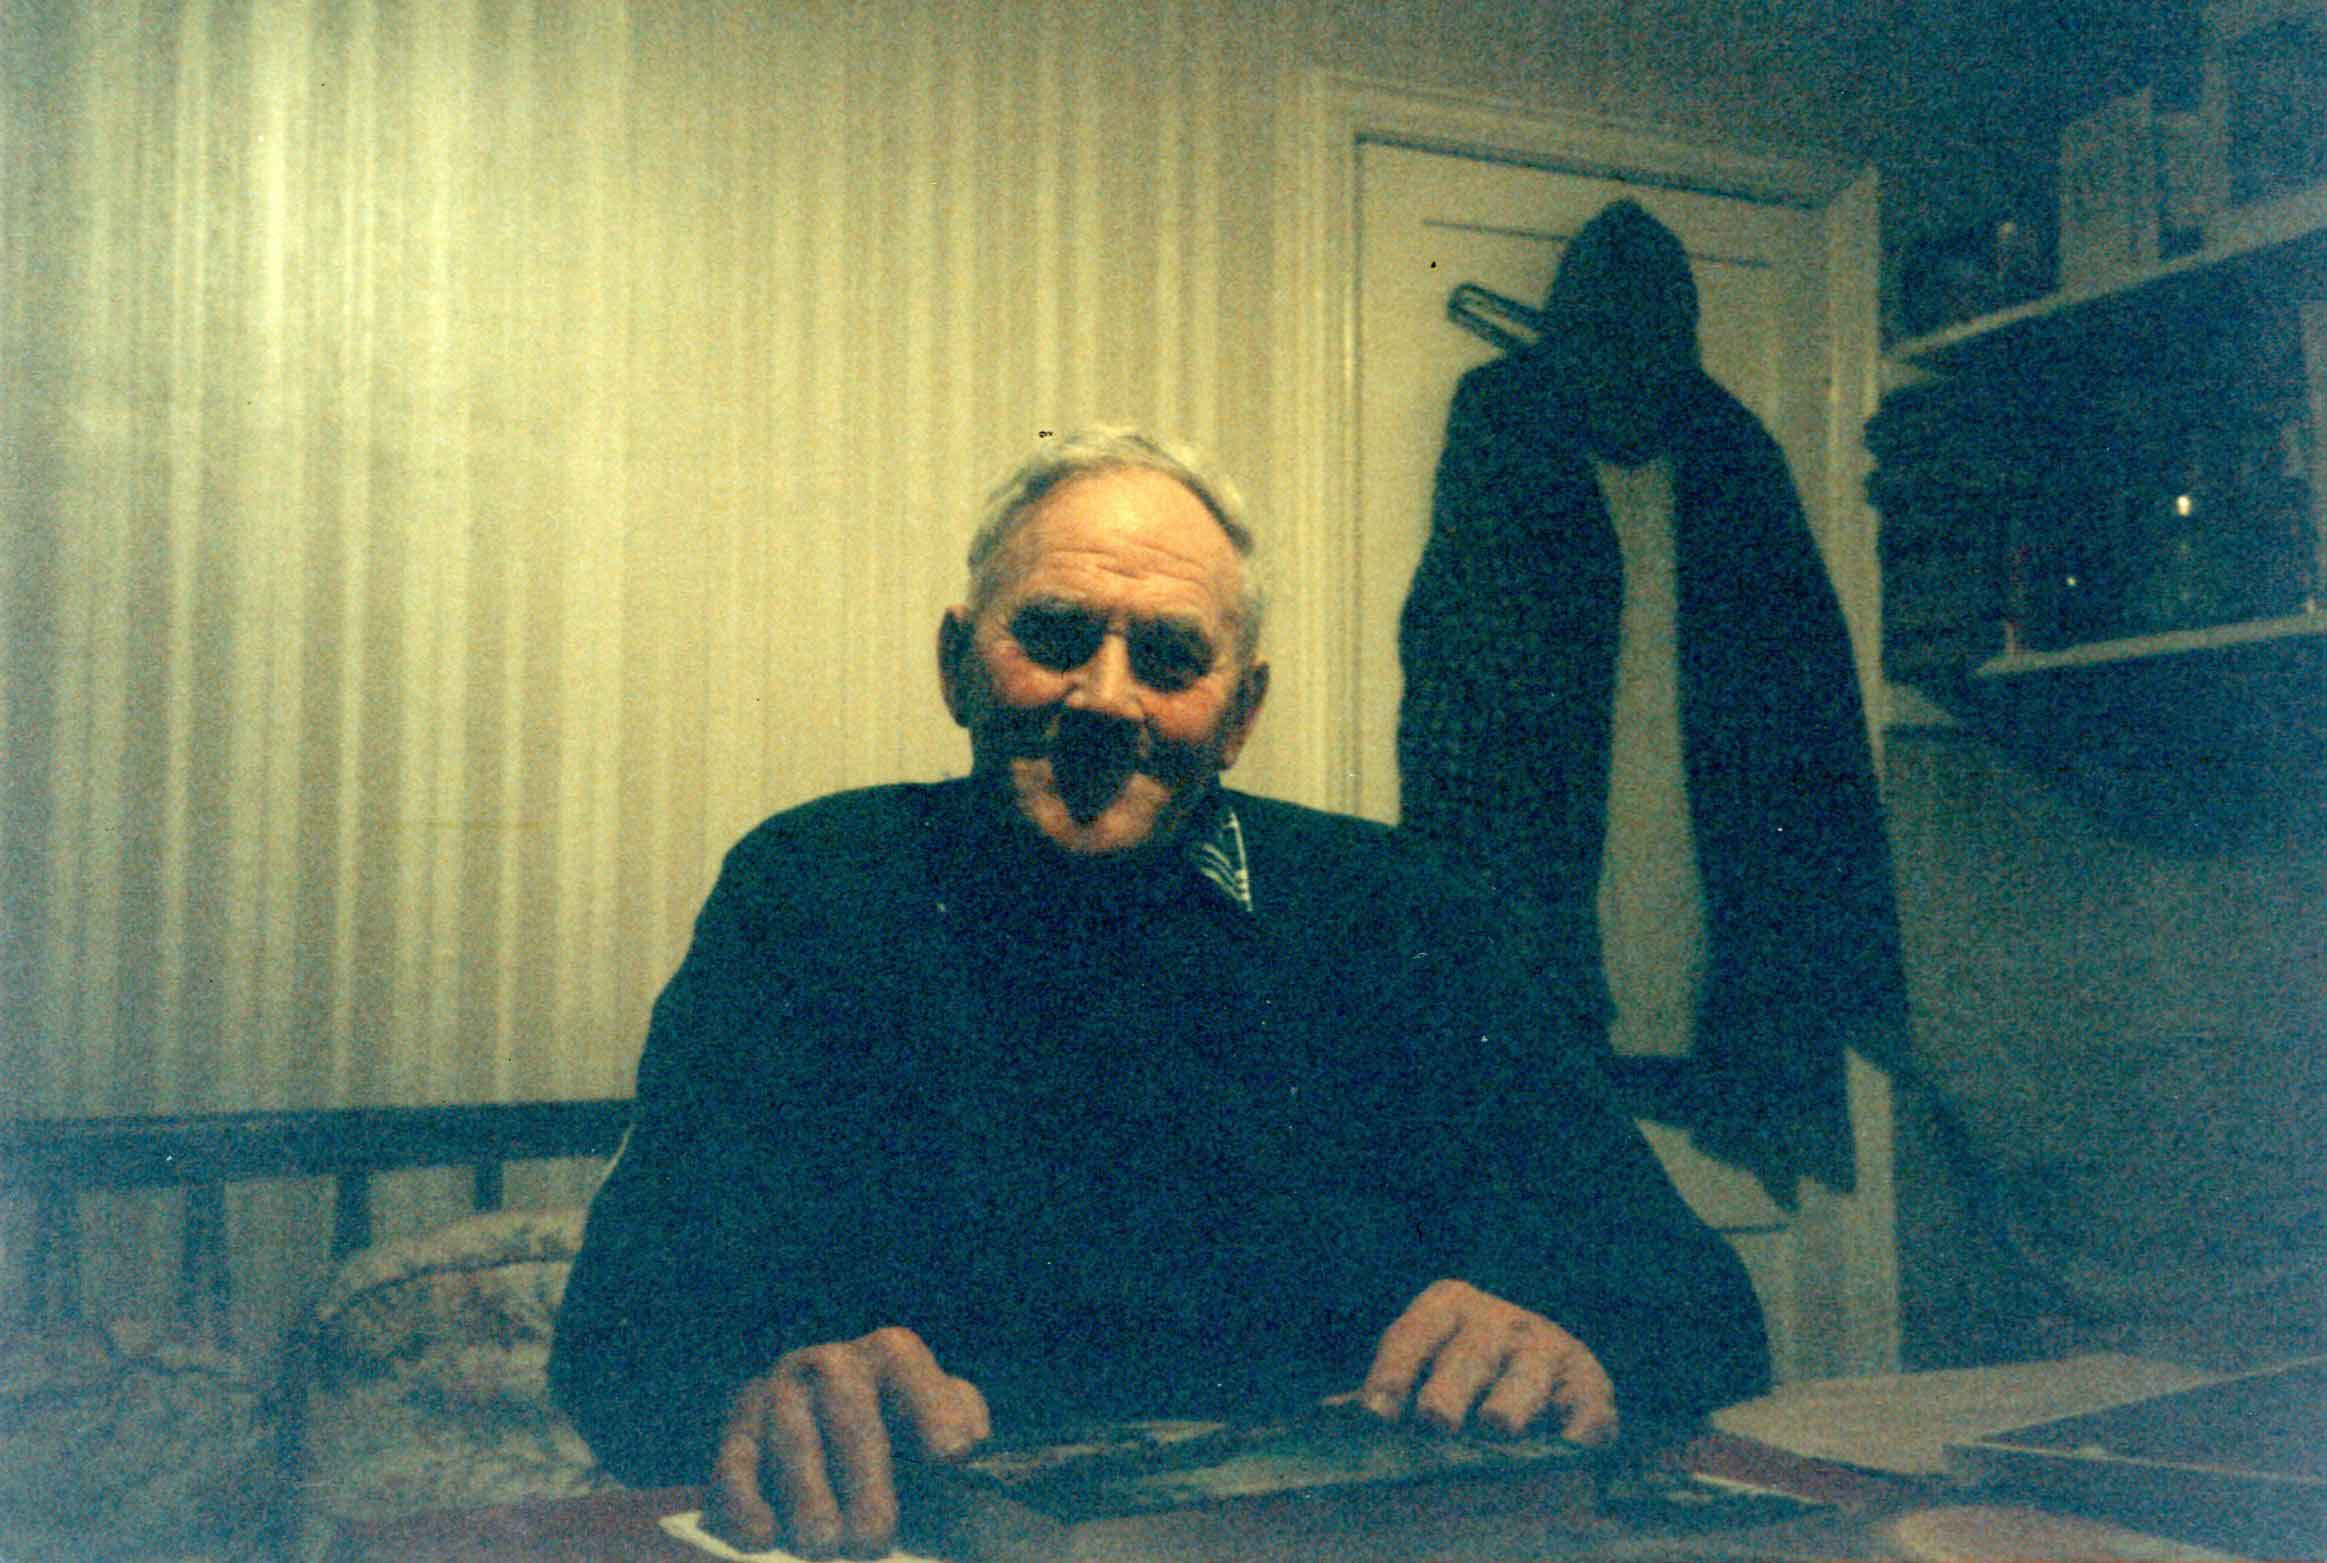 Mr Sidney Hammond in 1998, whose great grandmother worked at Elveden Hall and claimed to be a descendant of the Maharajah